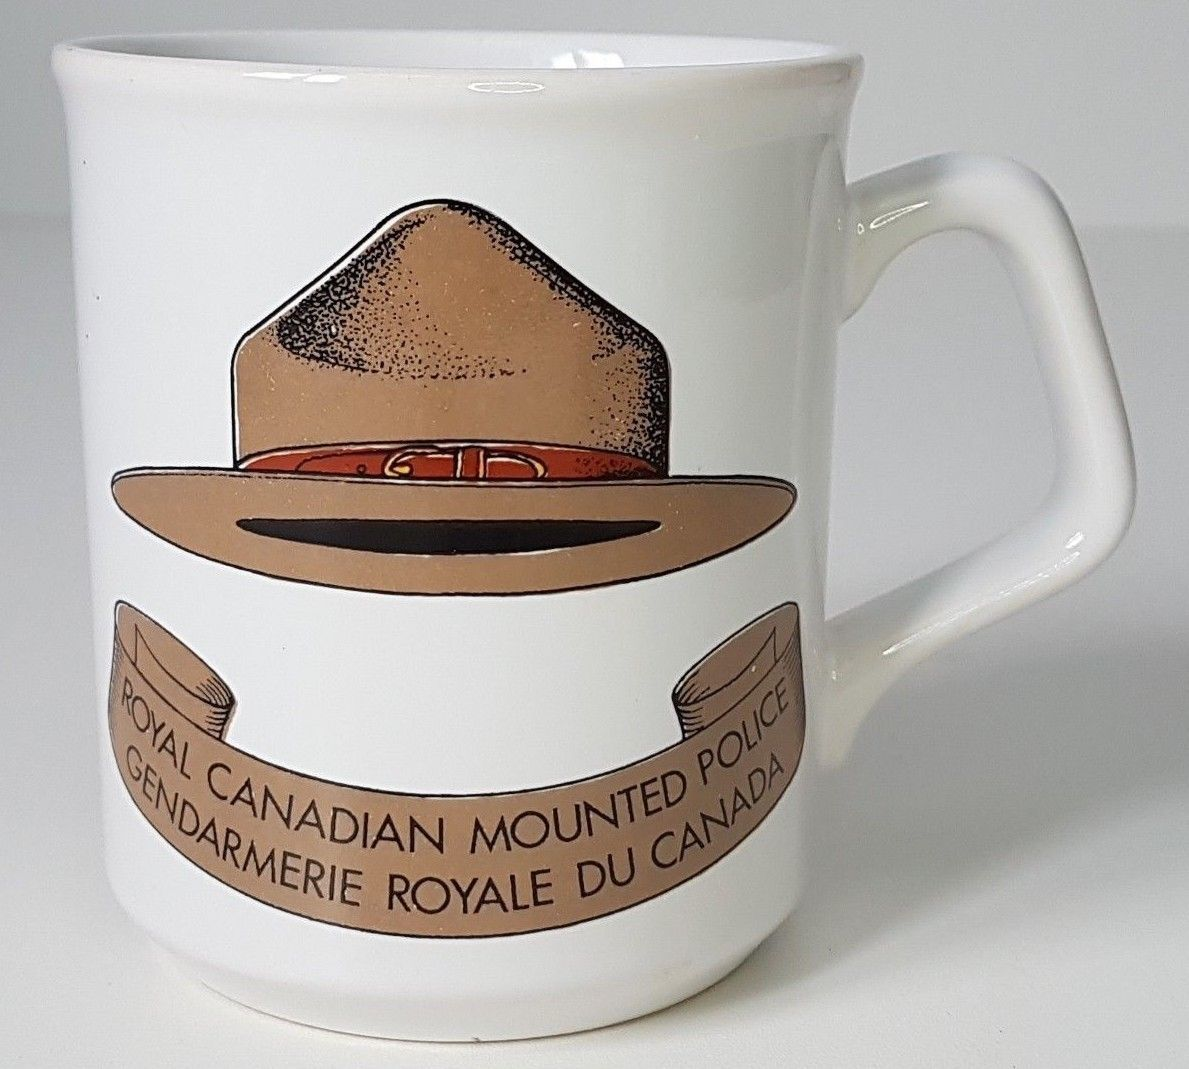 Vintage RCMP hat Coffee Mug Royal Canadian Mounted Police